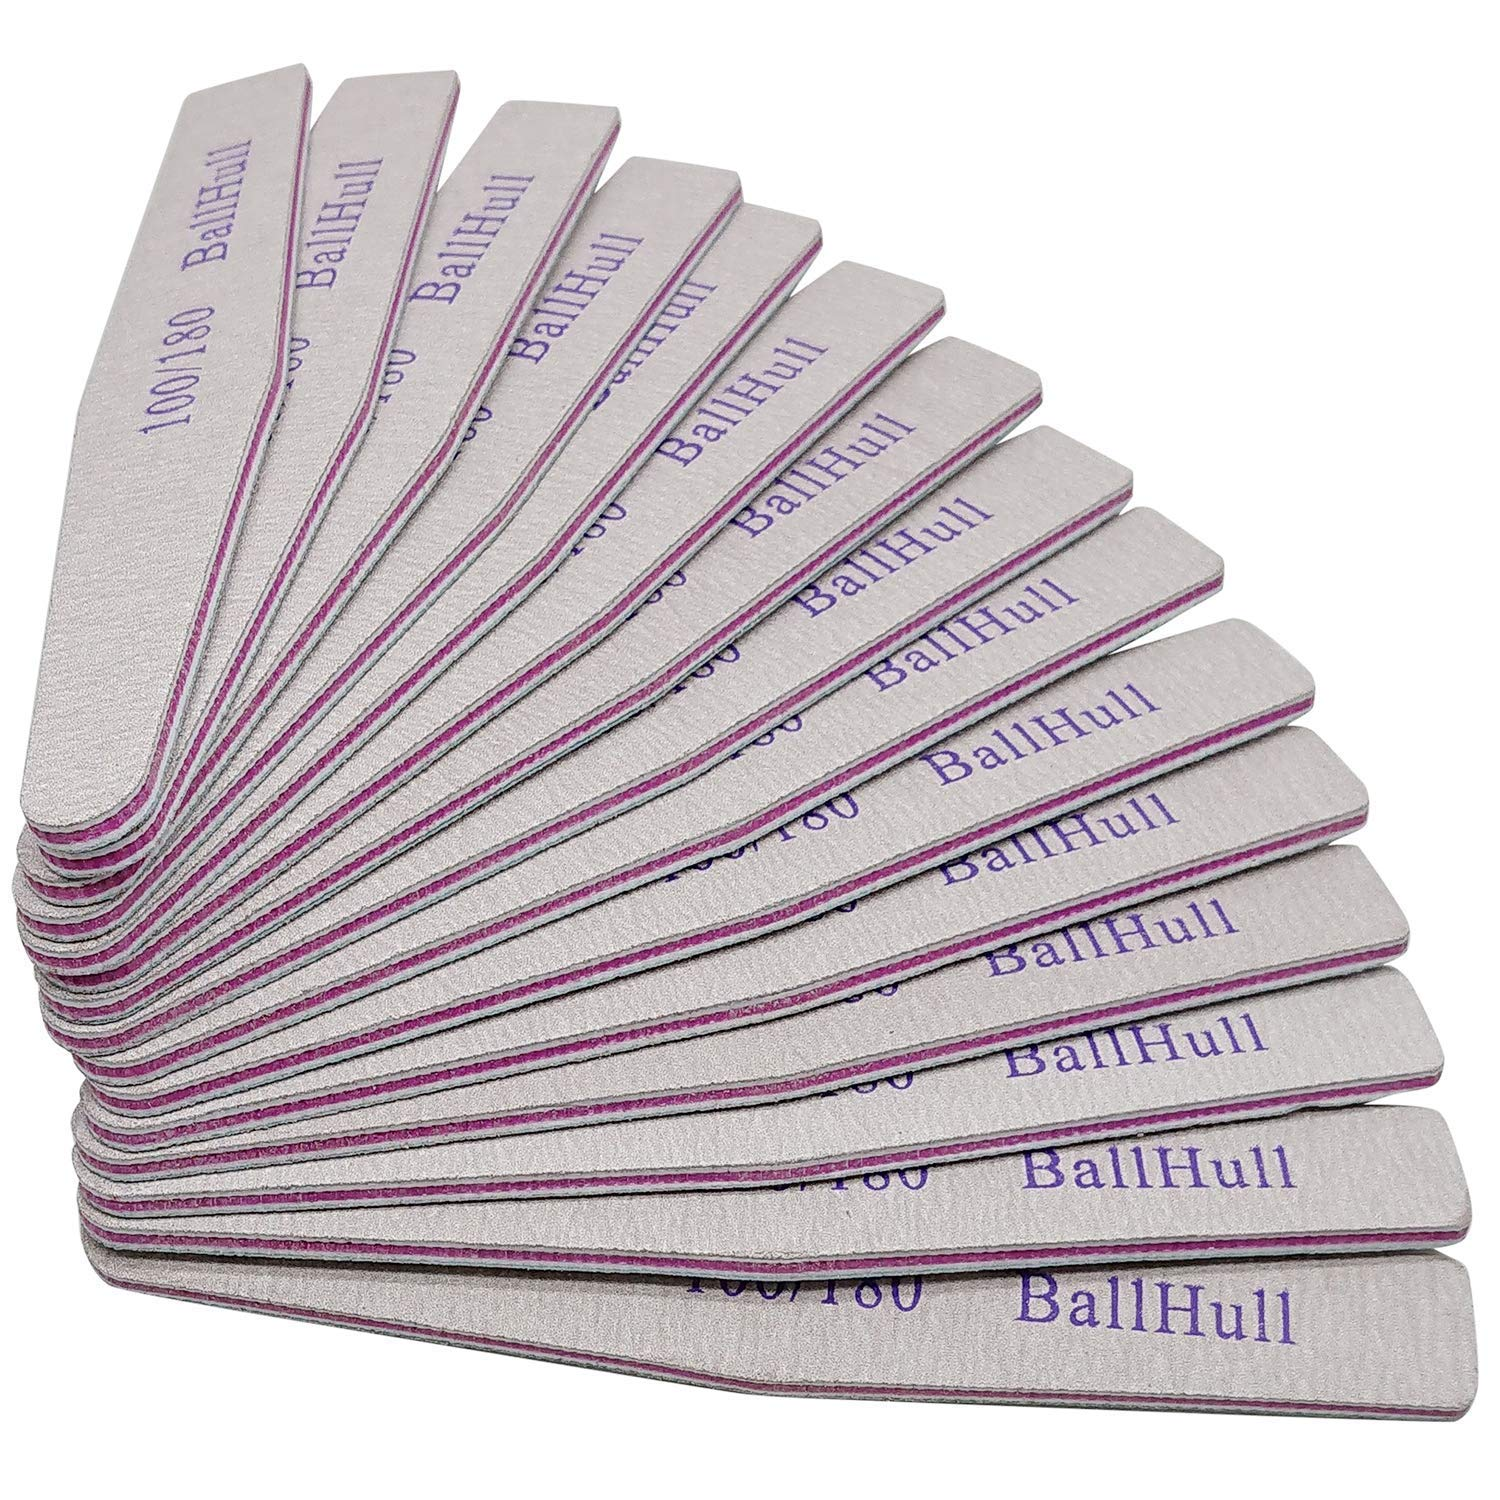 BallHull 15 Pcs Indefinitely Nail Files Double Emery Grit Board 180 Sided supreme 100